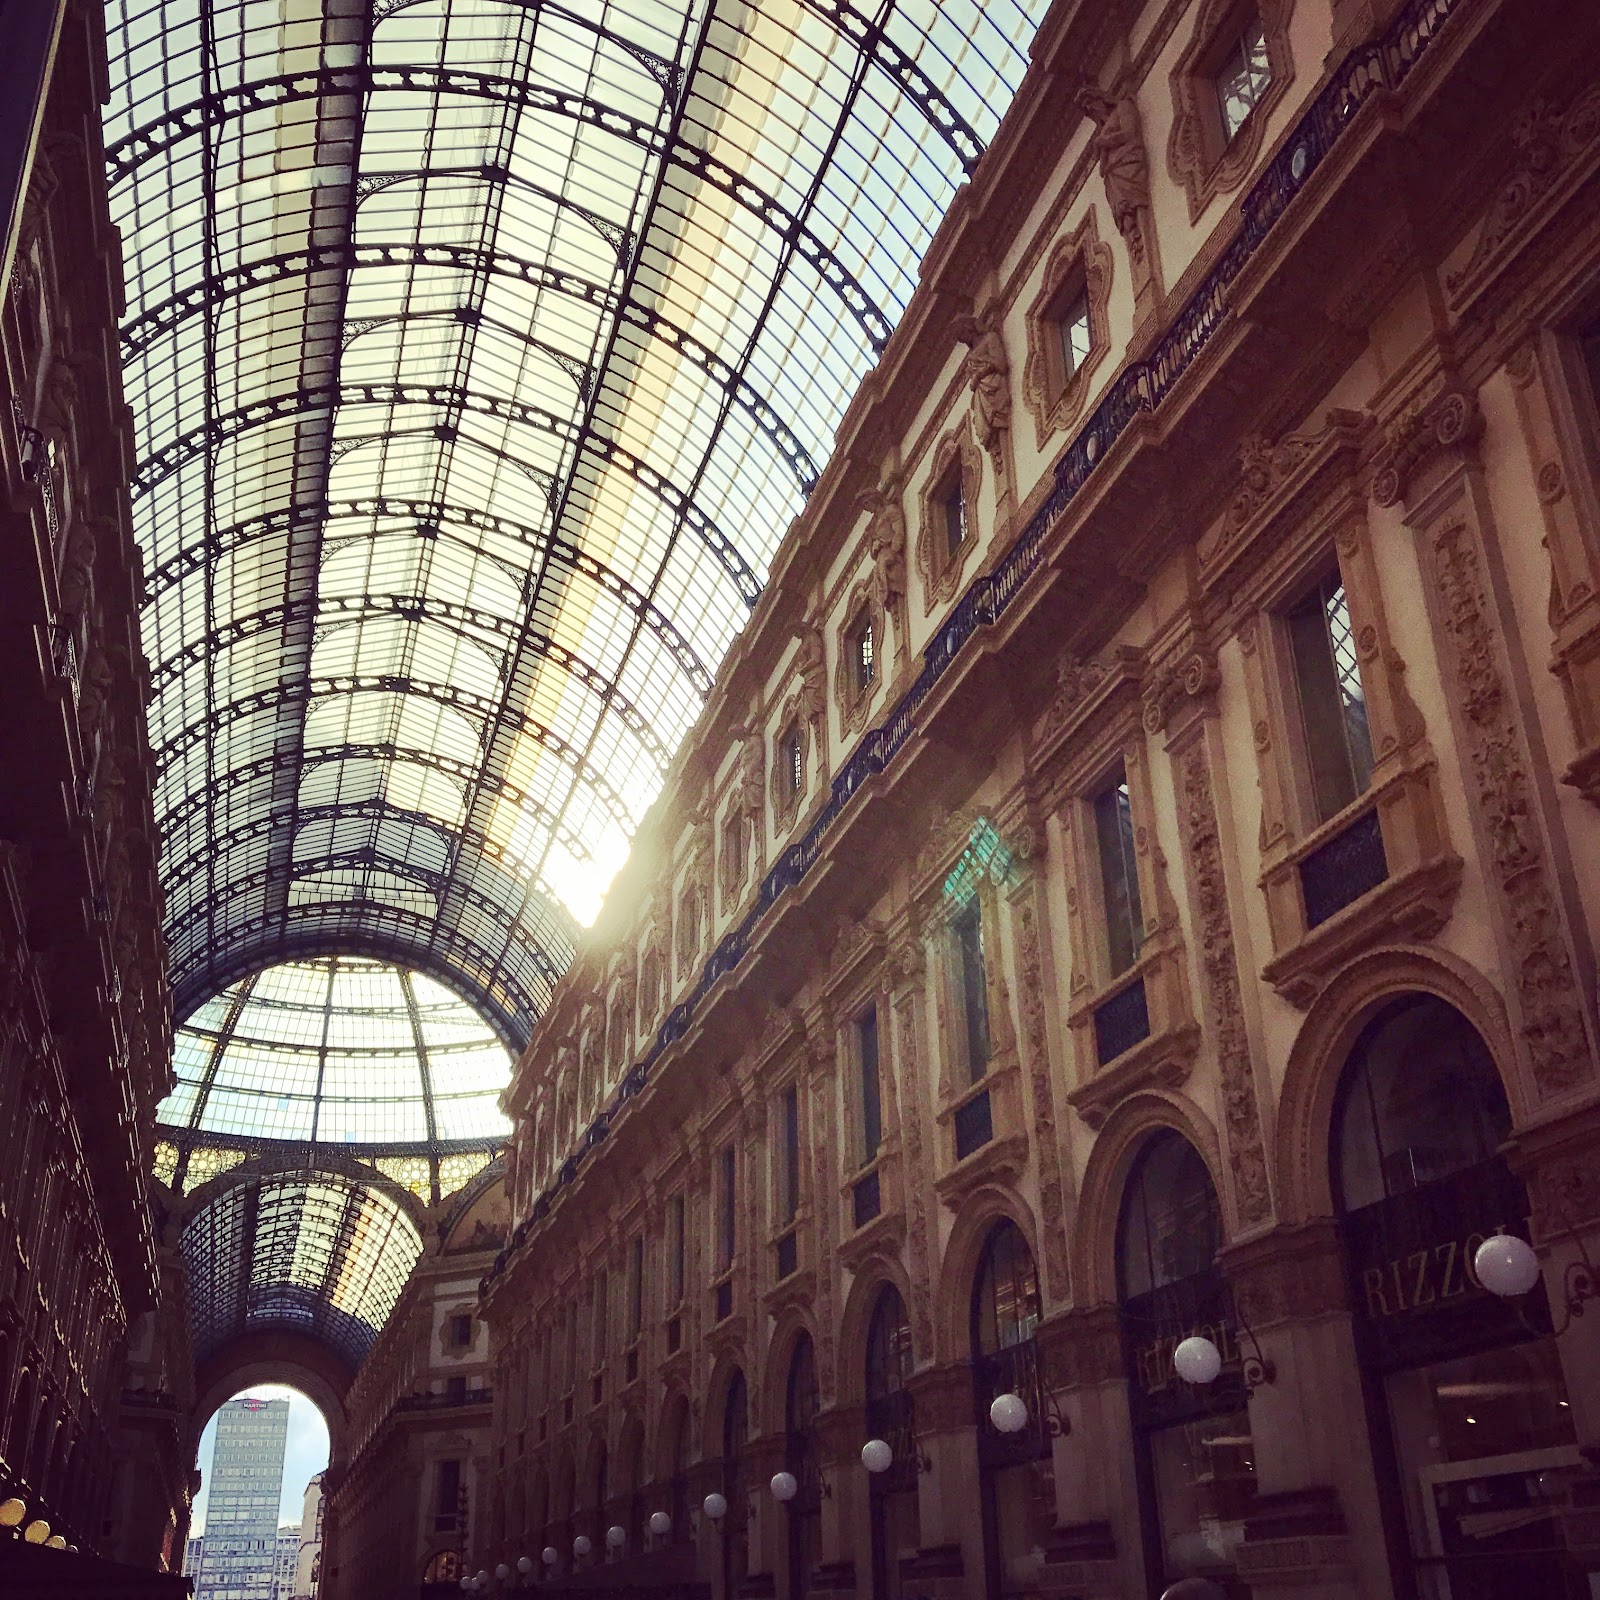 milan Galleria Vittorio Emanuele II, famous tourist site at piazza duomo. Grand architecture and glass ceiling hosts luxury boutiques and is one of the highlights of milano. see it on an Italy road trip